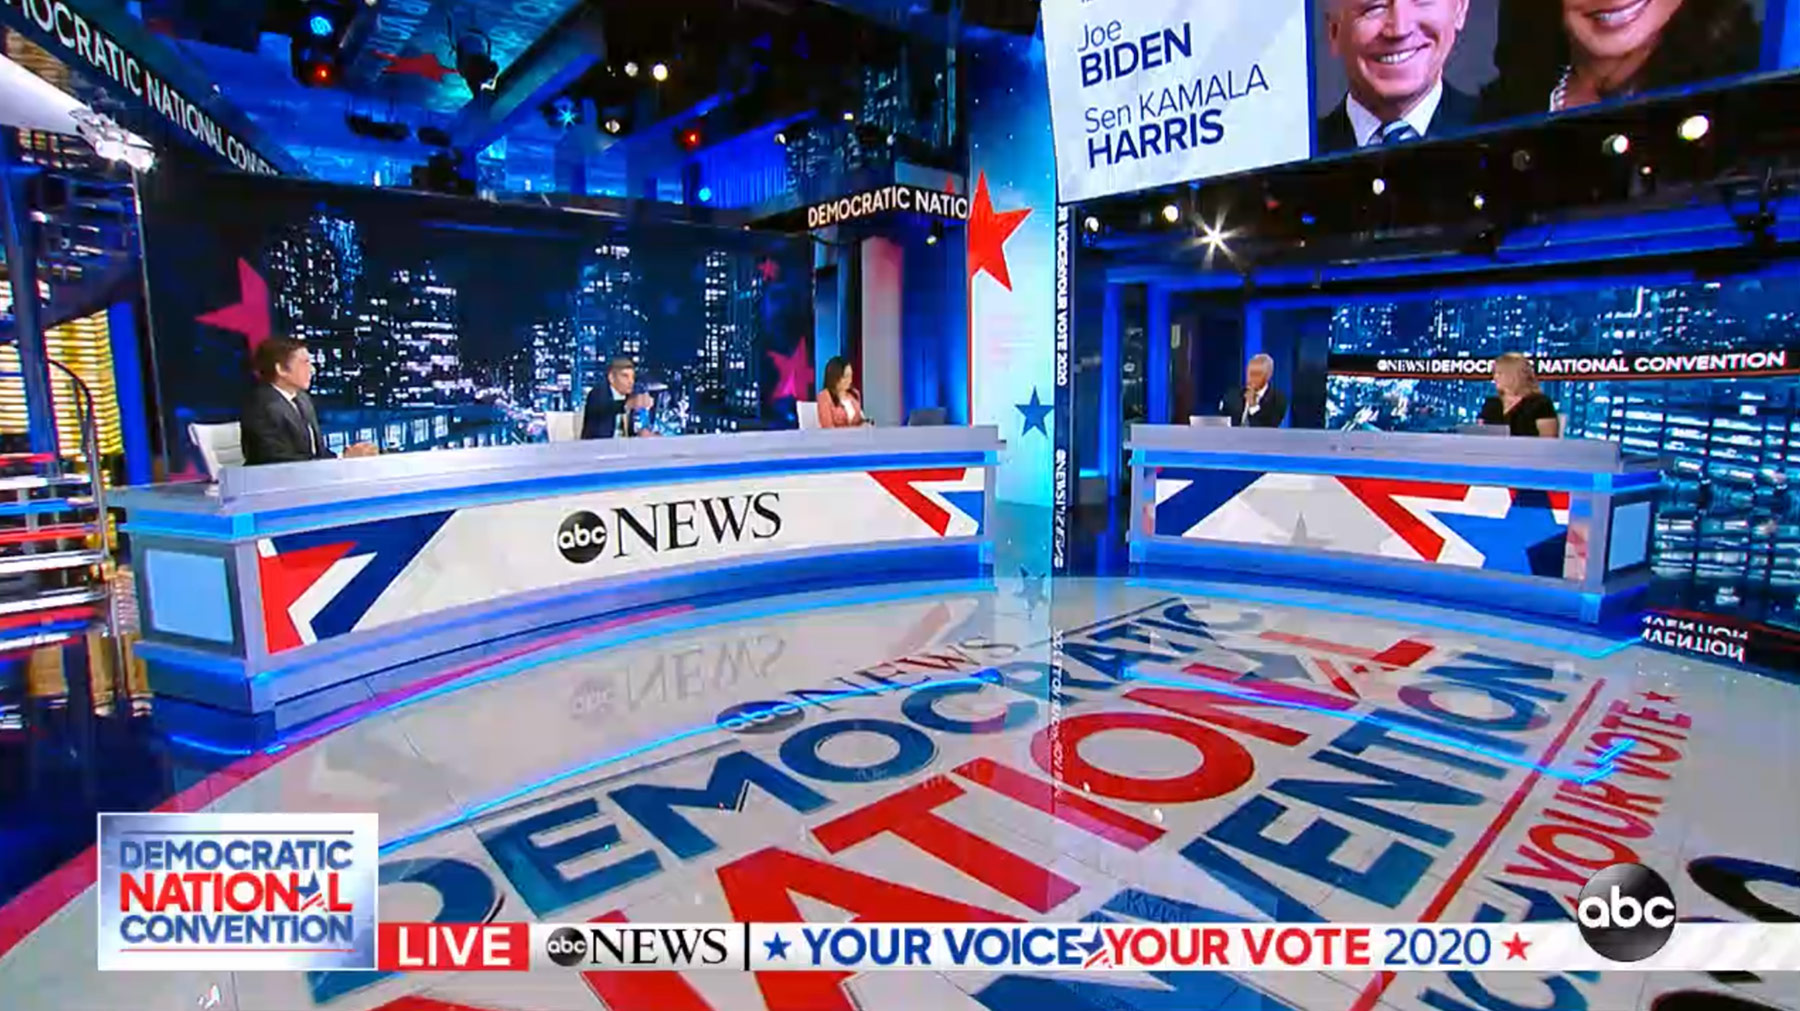 Set screen design for coverage of the Democratic National Convention, ABC News